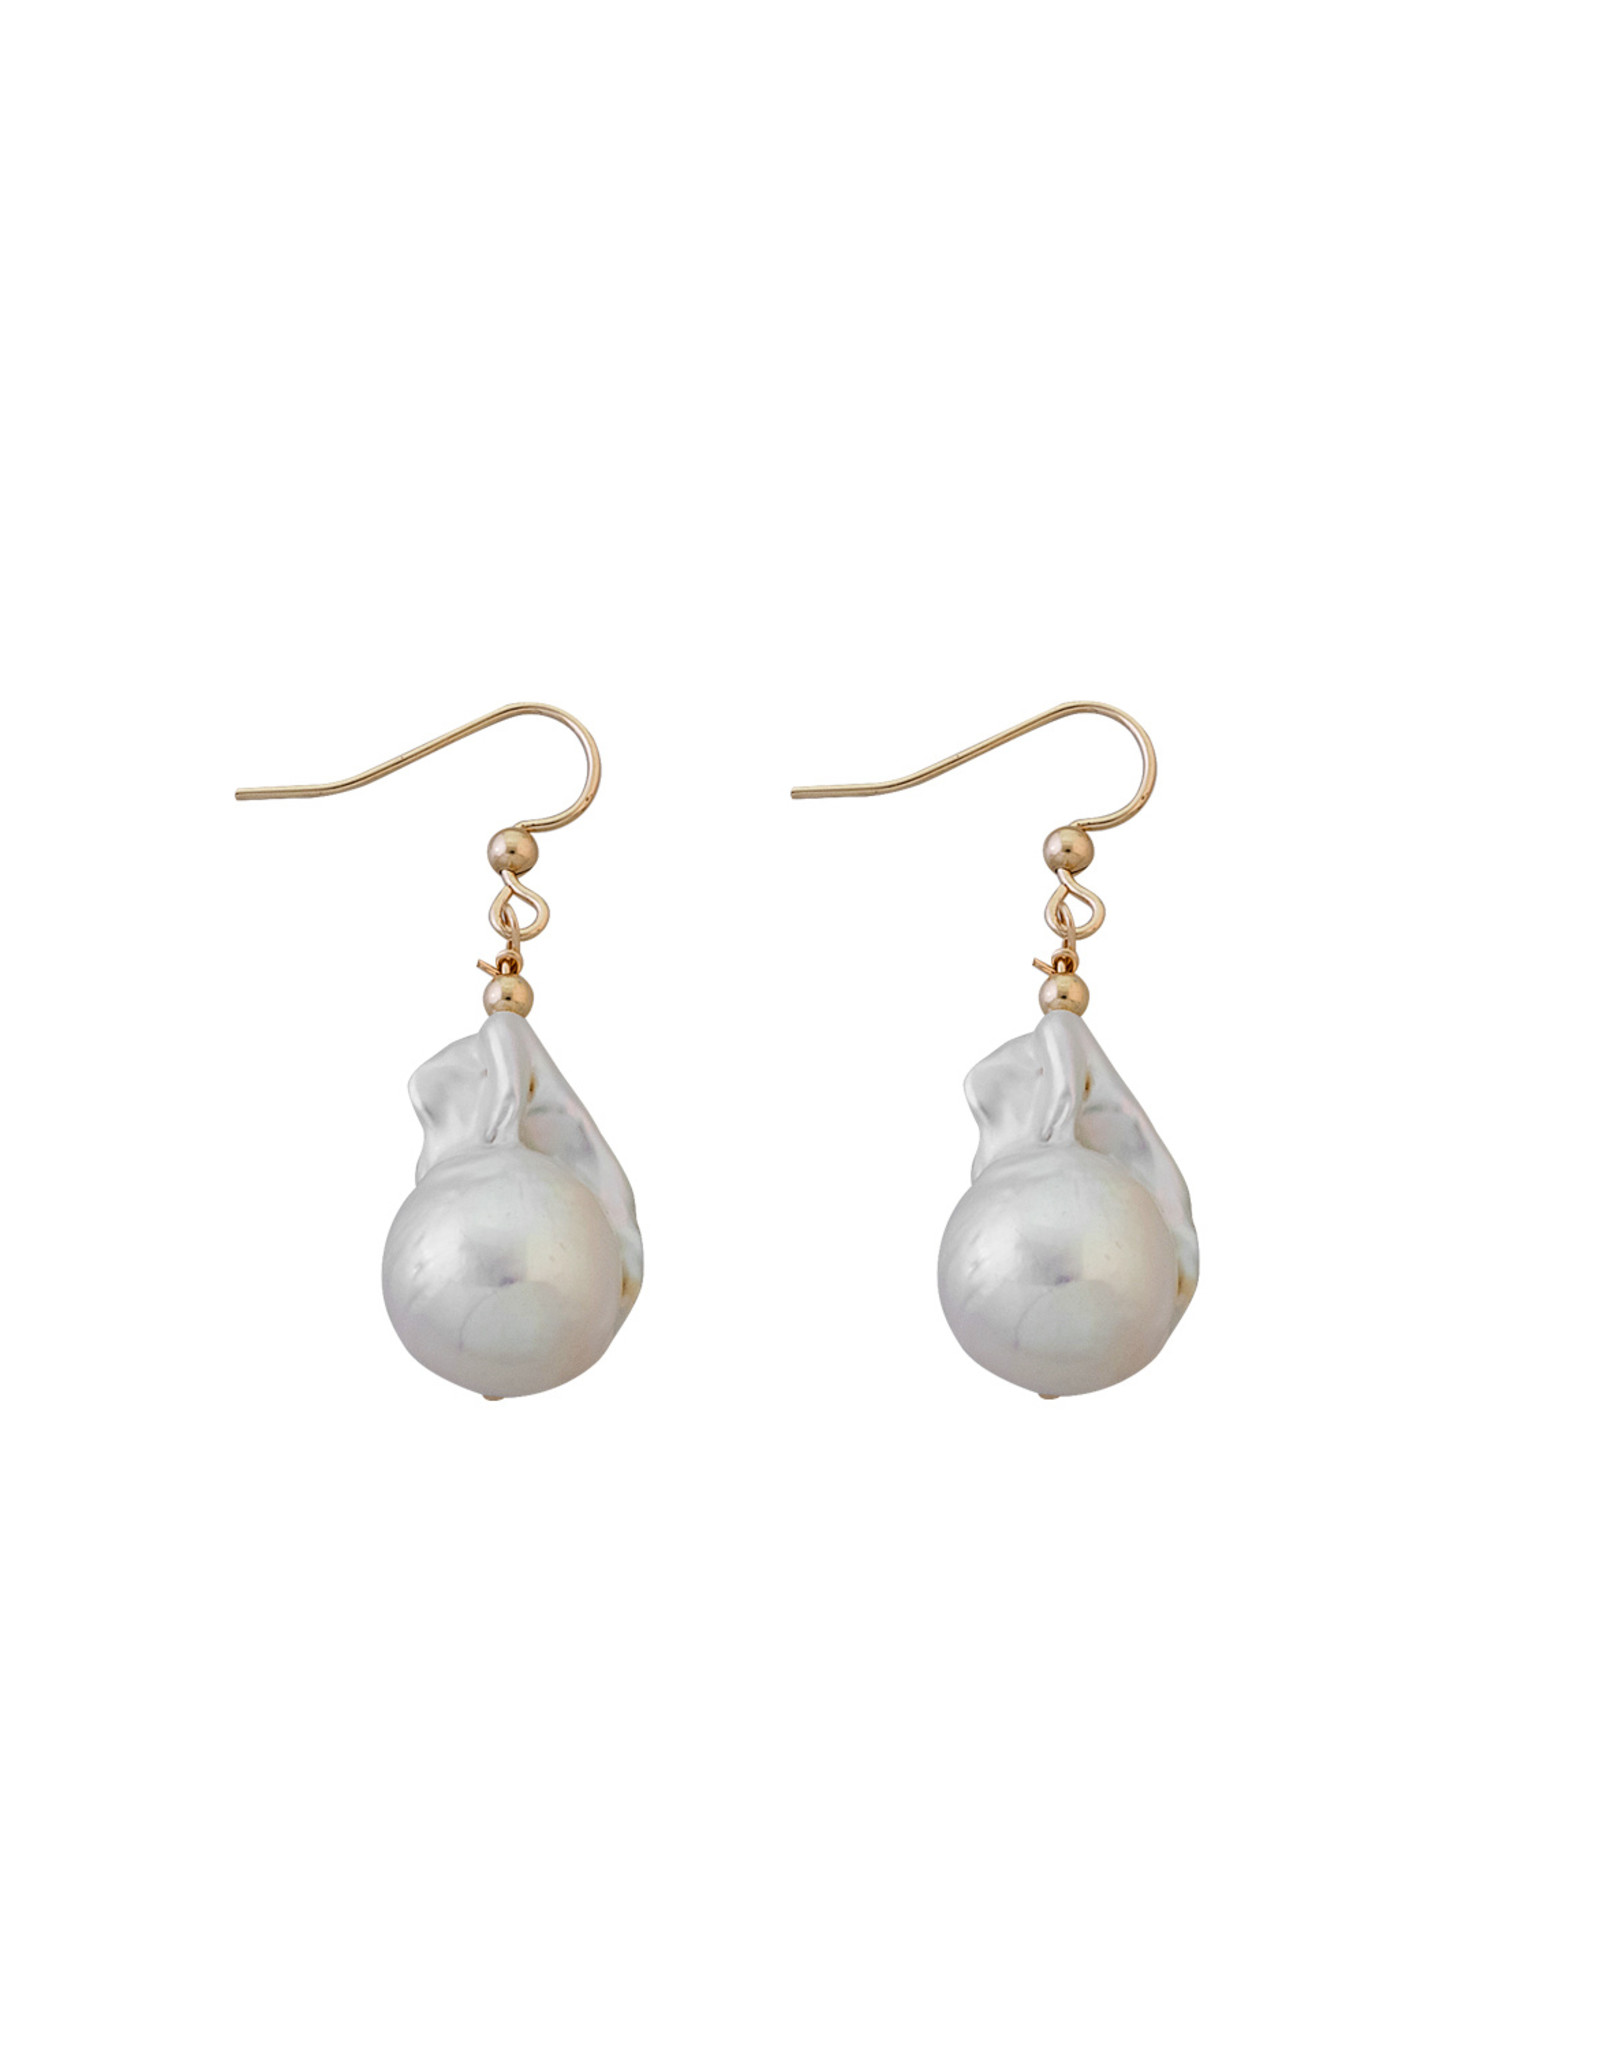 VON TRESKOW LARGE BAROQUE PEARL EARRINGS YELLOW GOLD